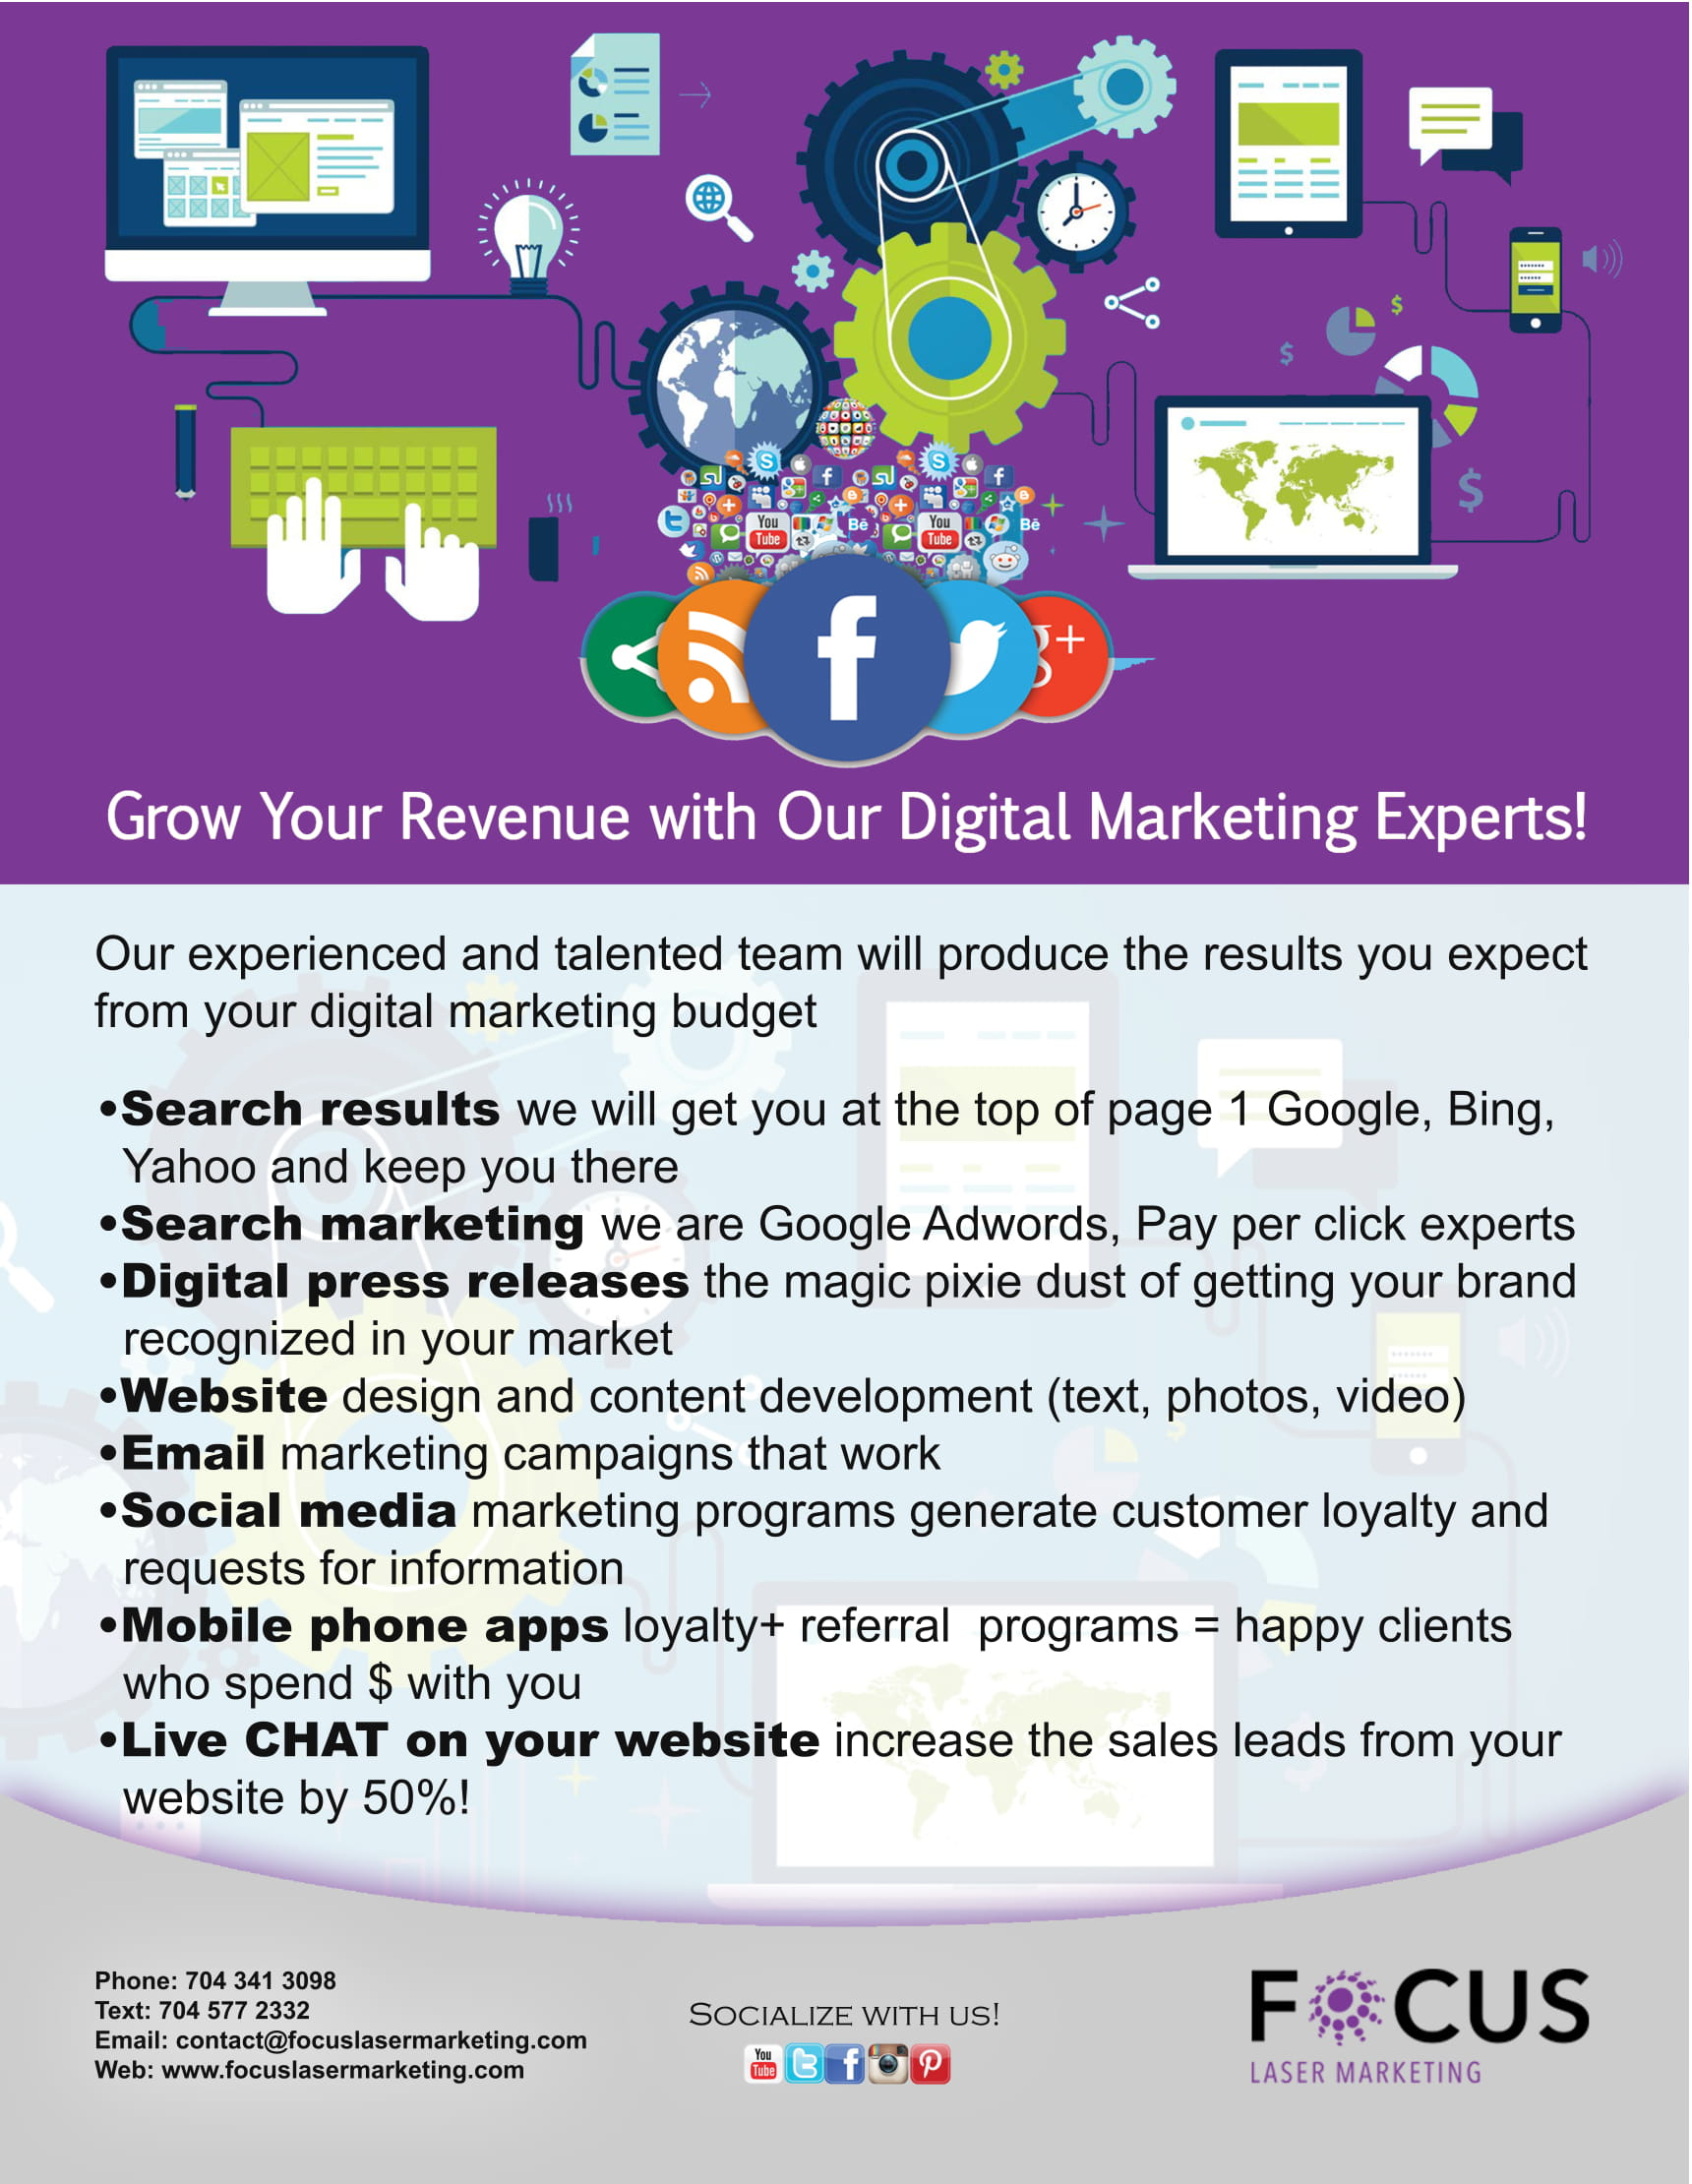 Grow Your Revenue with Our Digital Marketing Experts